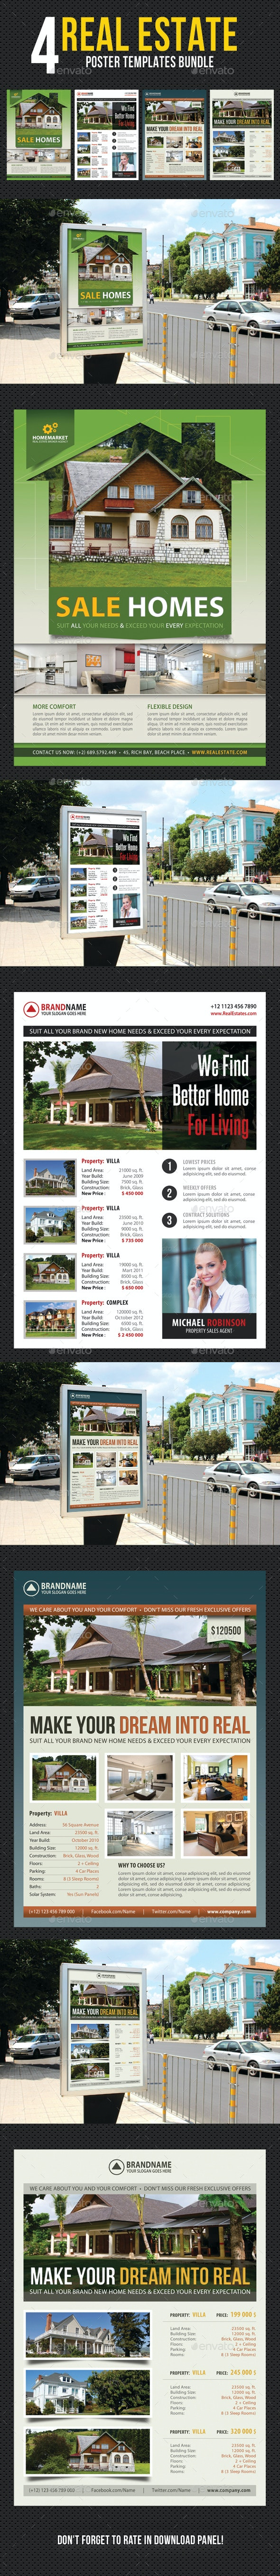 4 in 1 Real Estate Agency Poster Bundle - Signage Print Templates